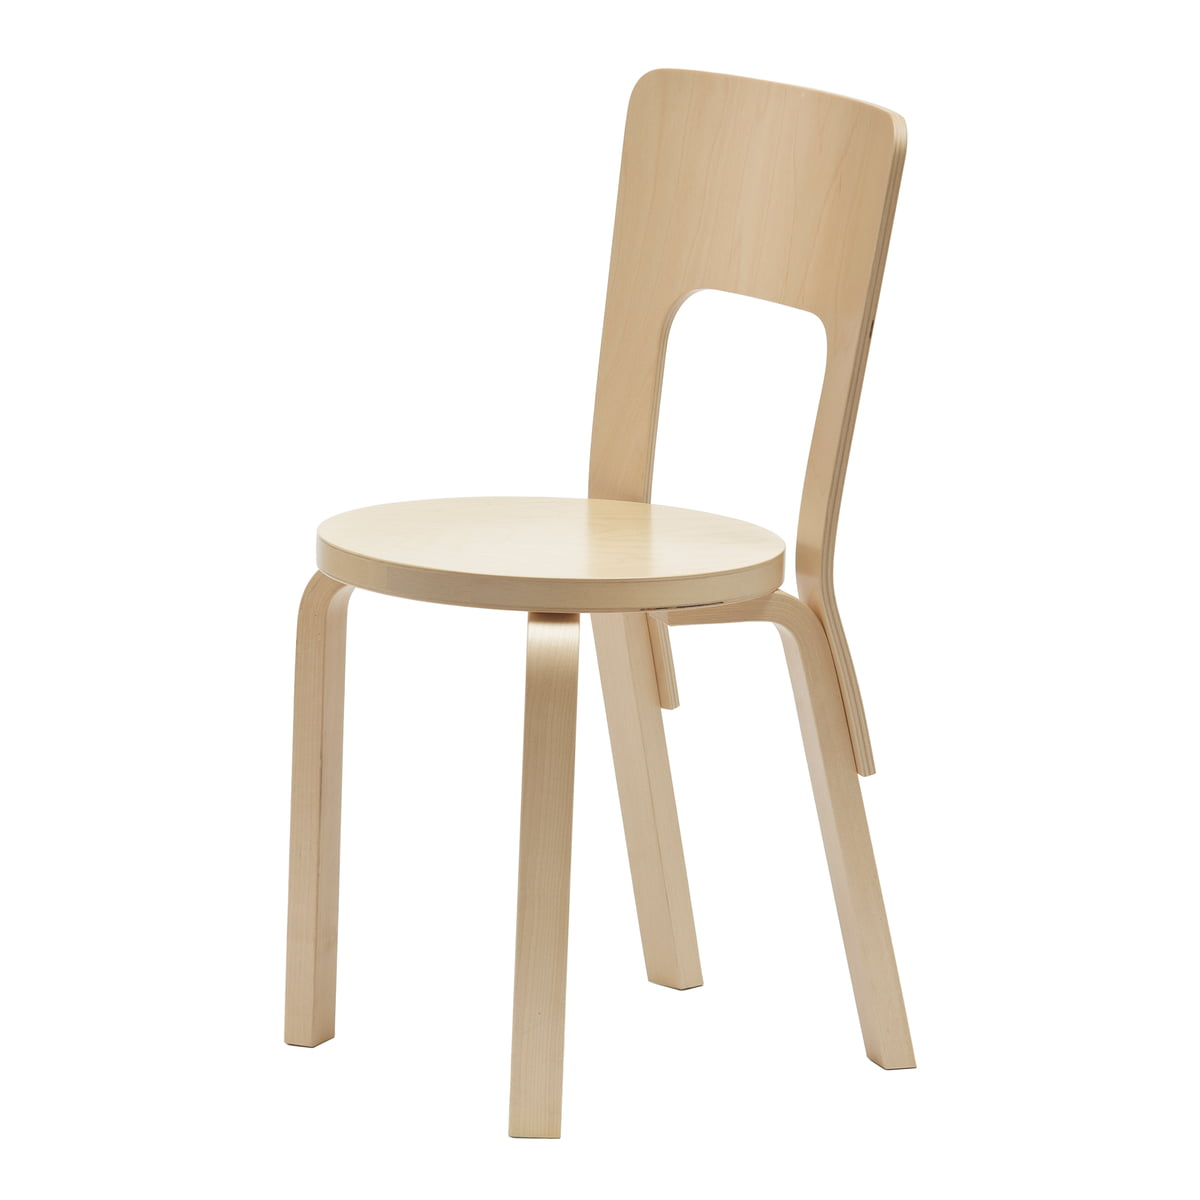 chair 66 by artek in our shop. Black Bedroom Furniture Sets. Home Design Ideas